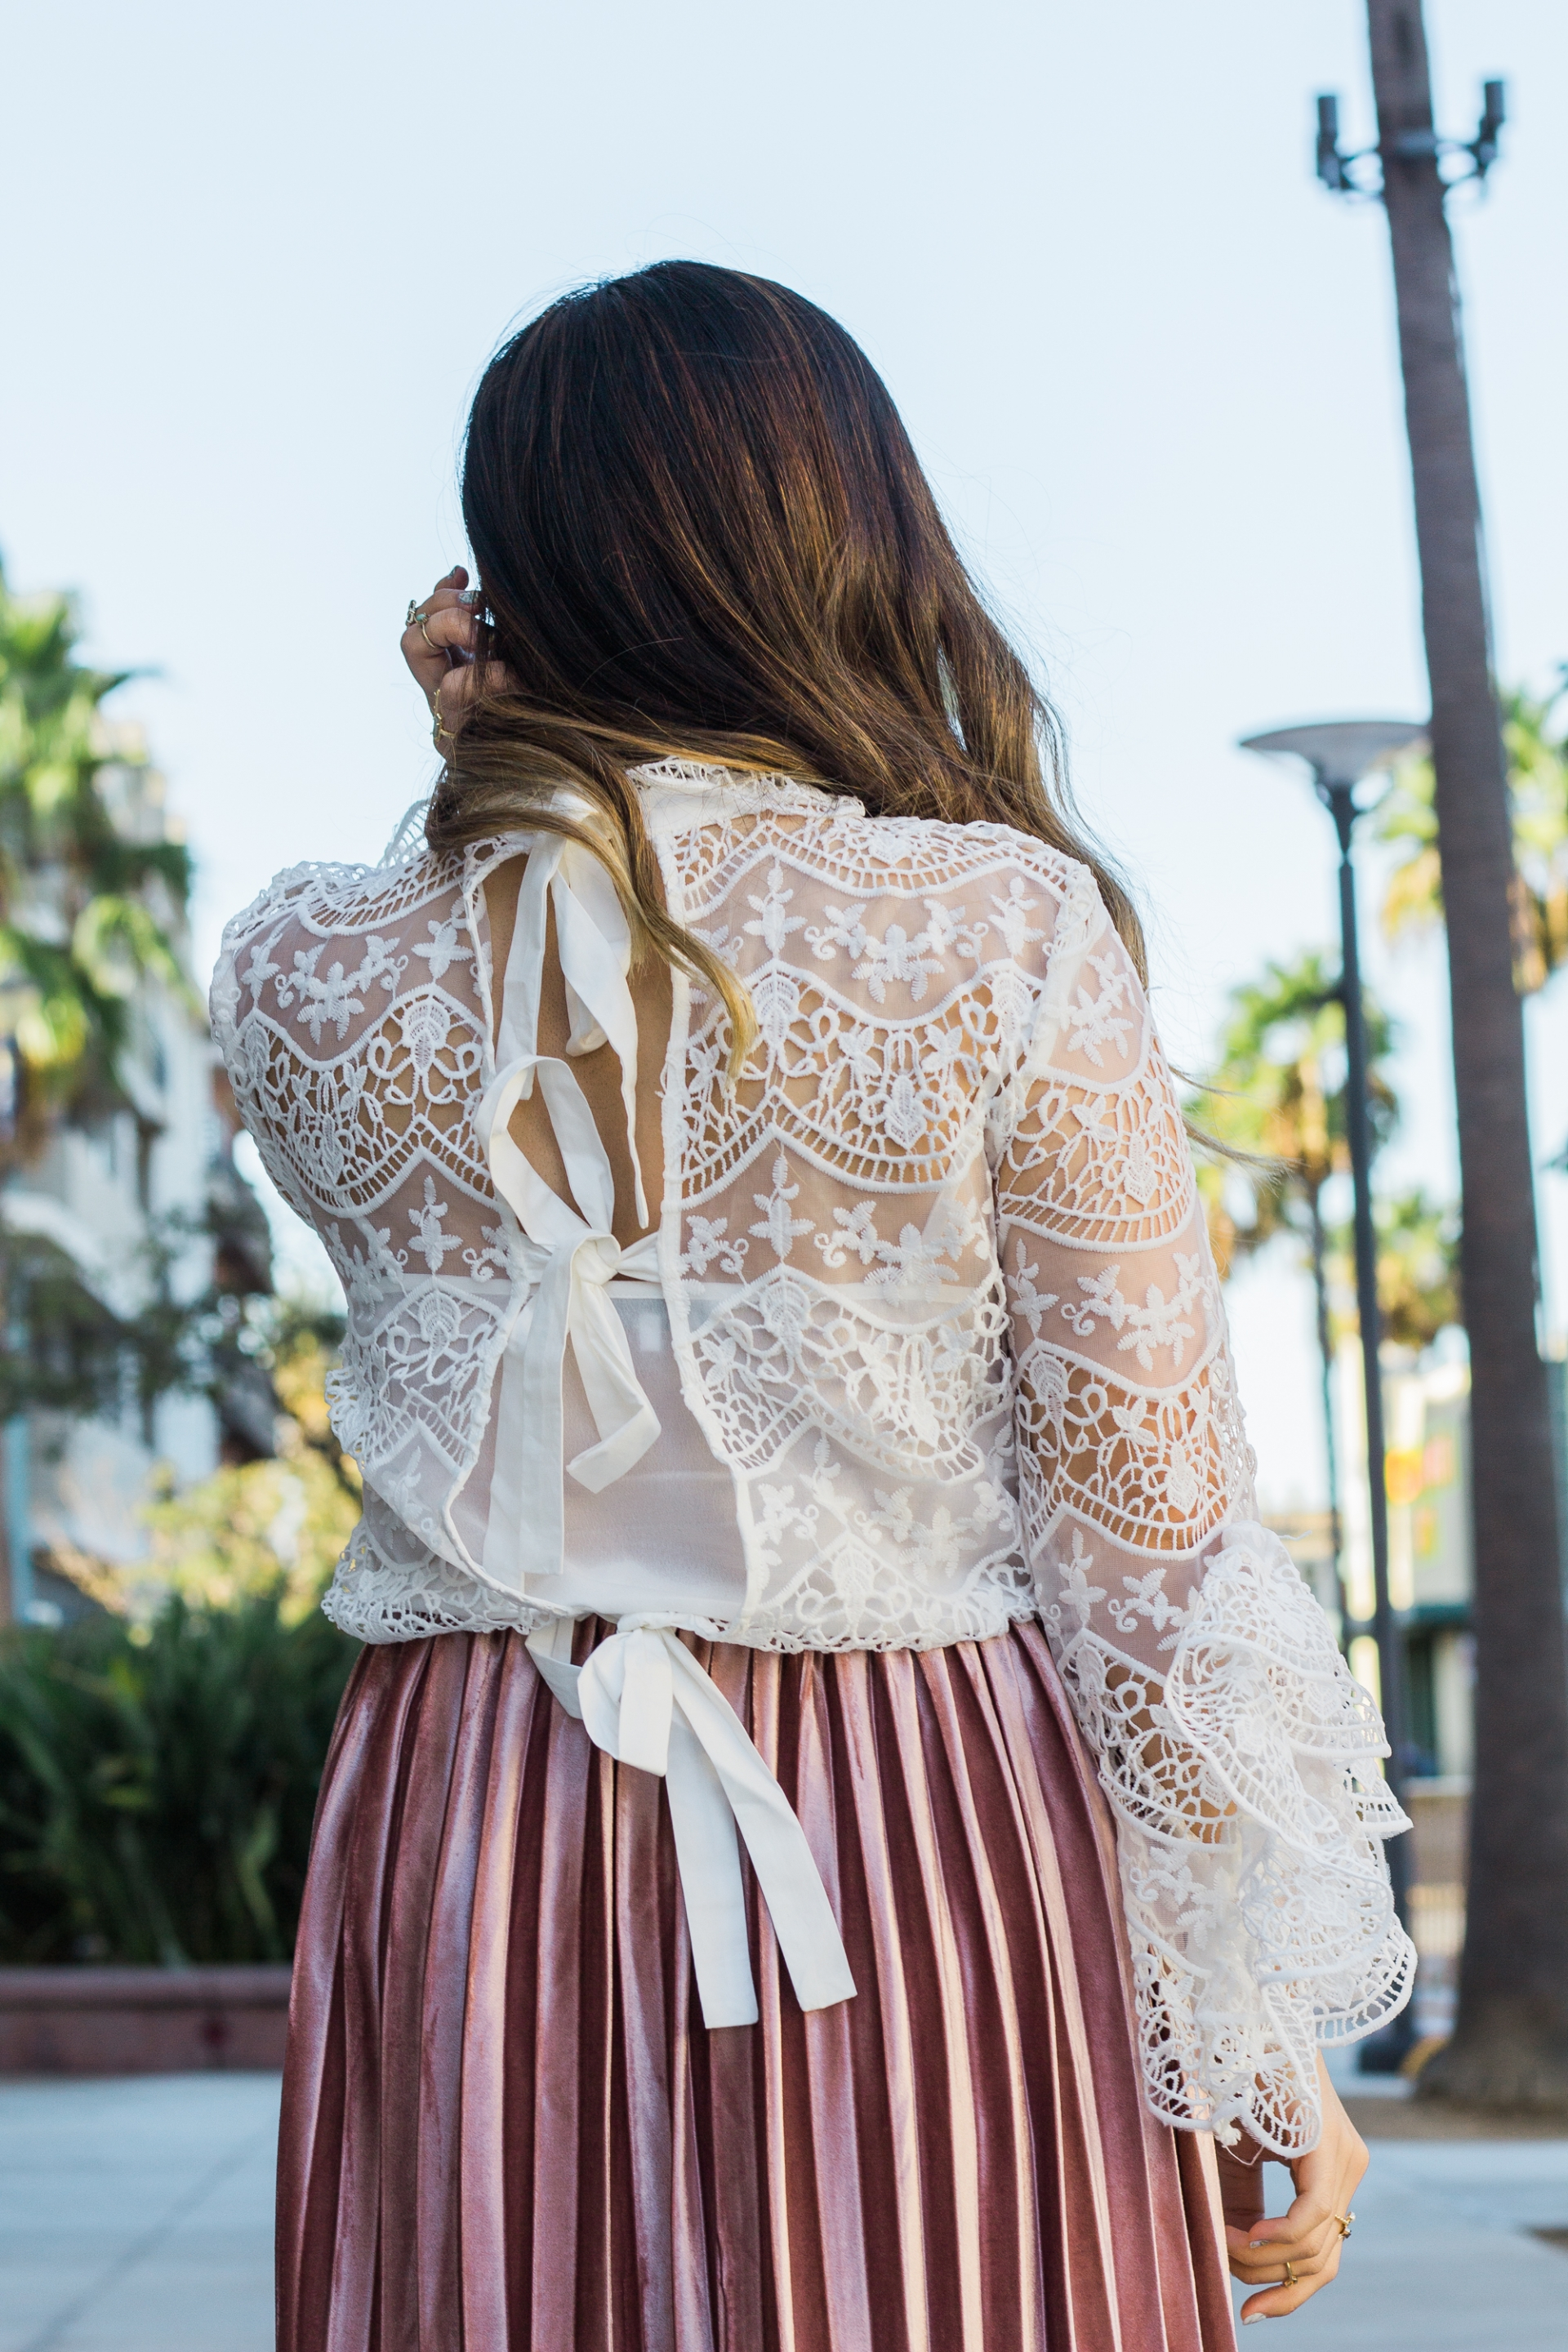 Revolve Endless Love Ribbon Ties Crochet Lace Top Embroidered Crochet Lace Overlay Top with Back Tie Closures Ruffle Collar Trim And Extravagant Bell Sleeves Baby Pink Velvet Pleated Midi Skirt